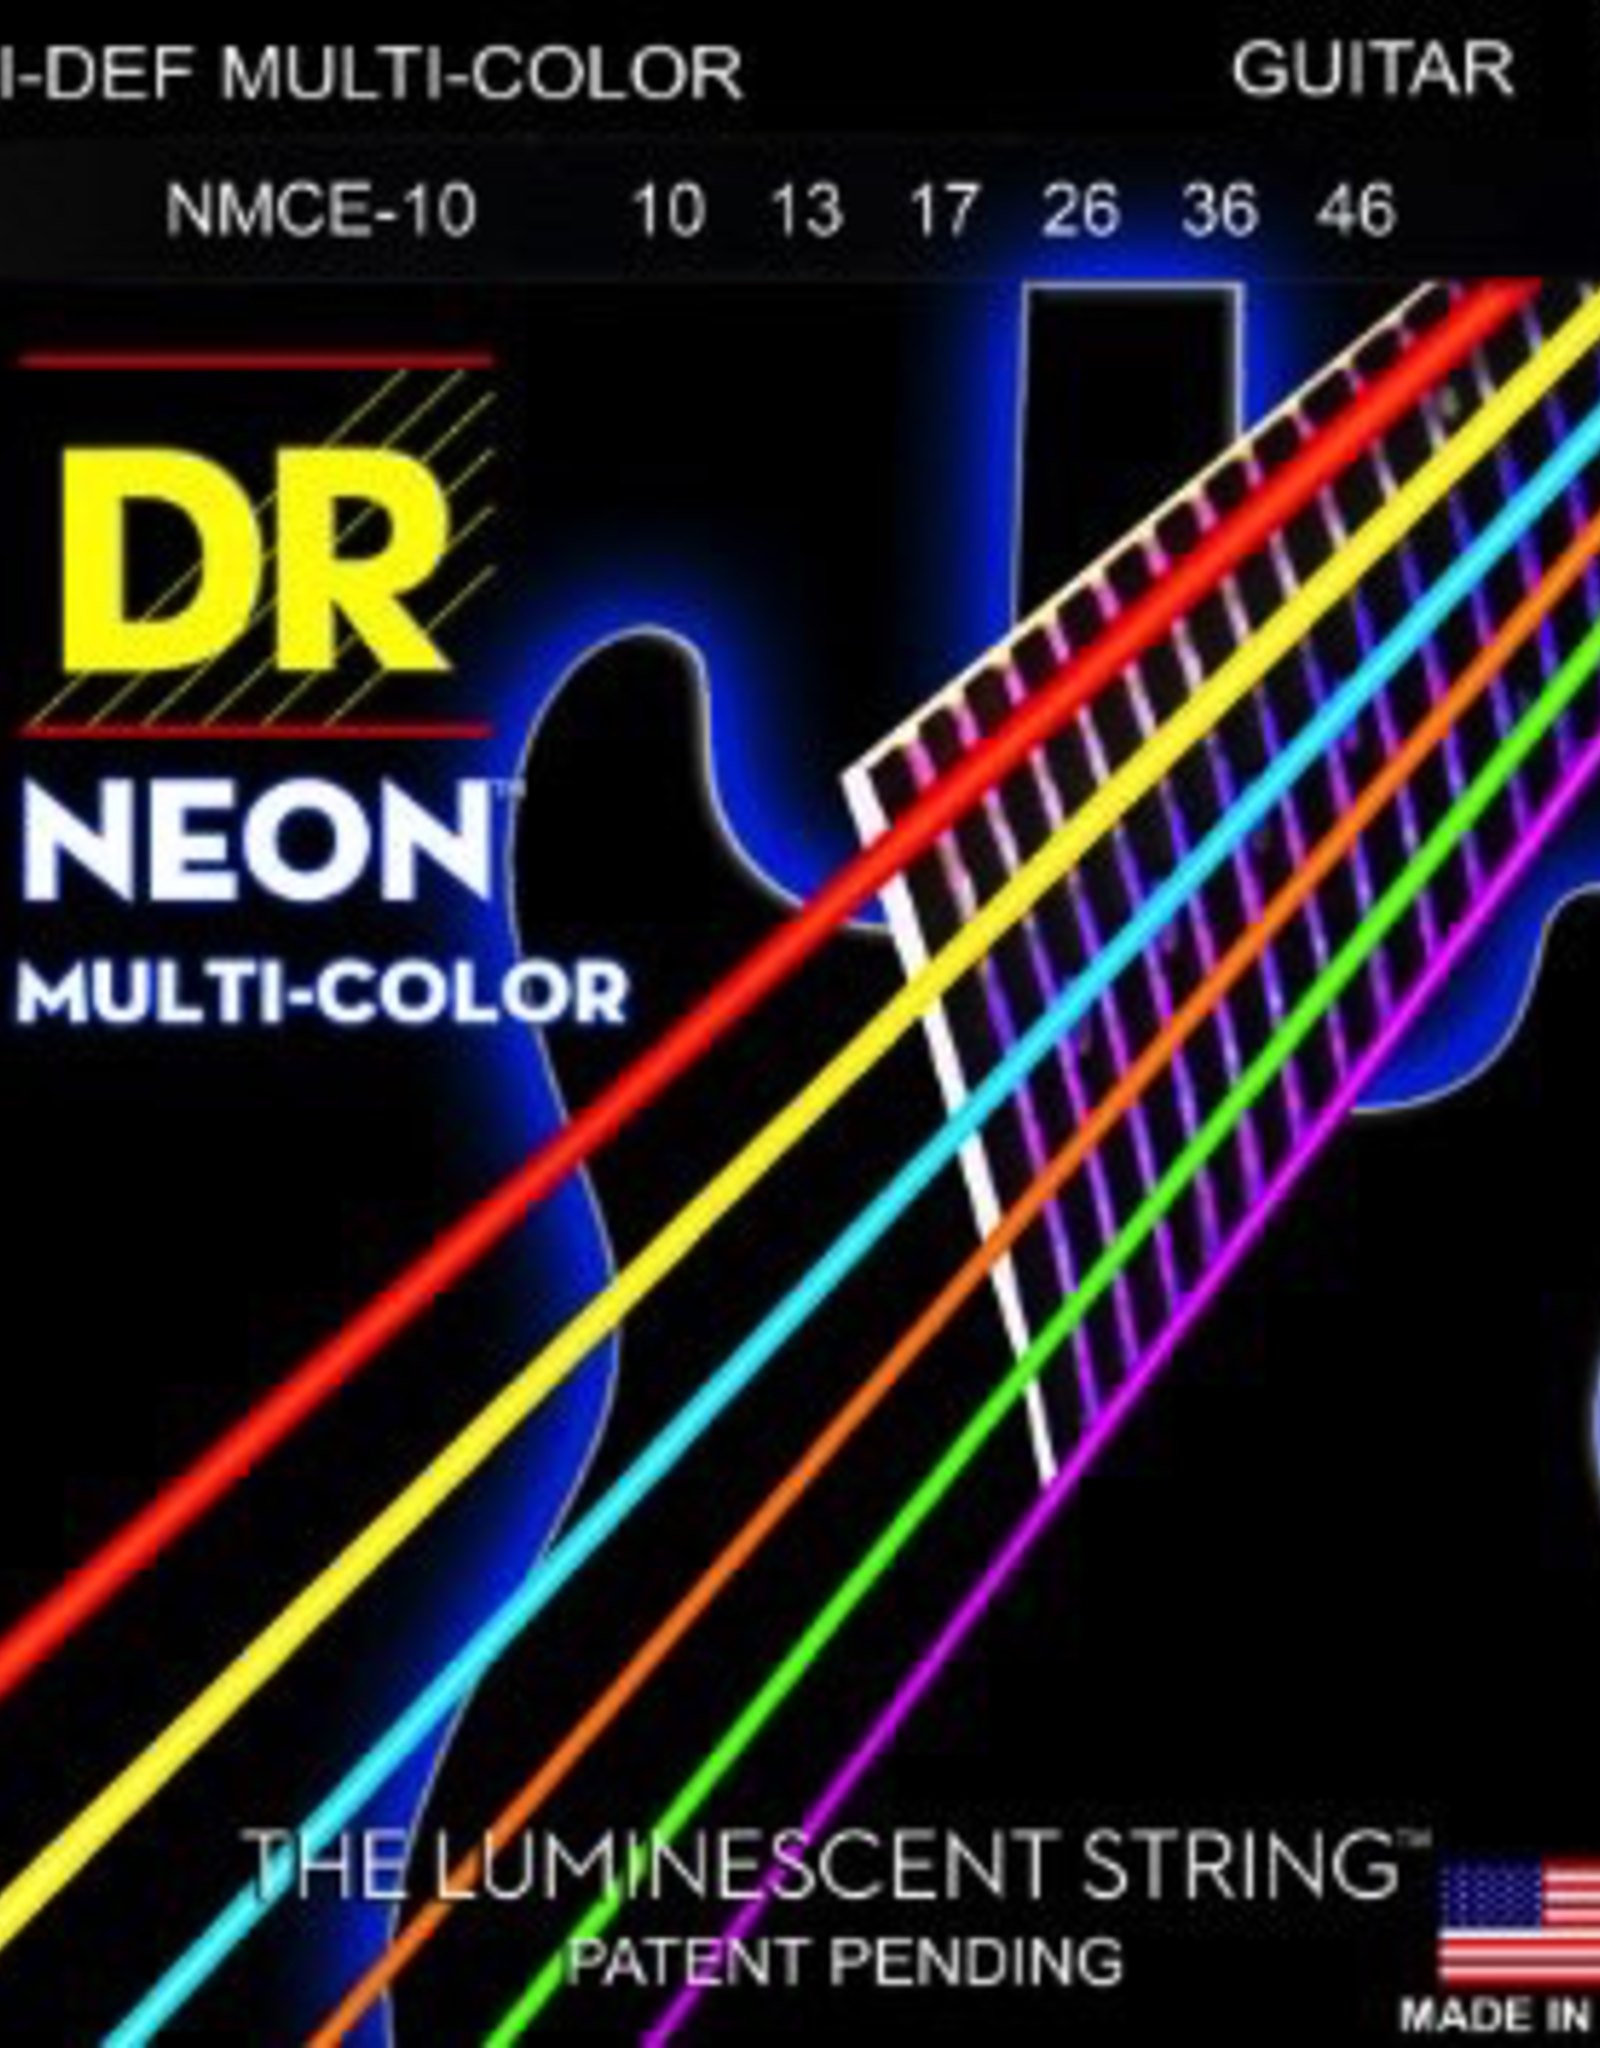 DR DR Neon Electric Guitar Strings